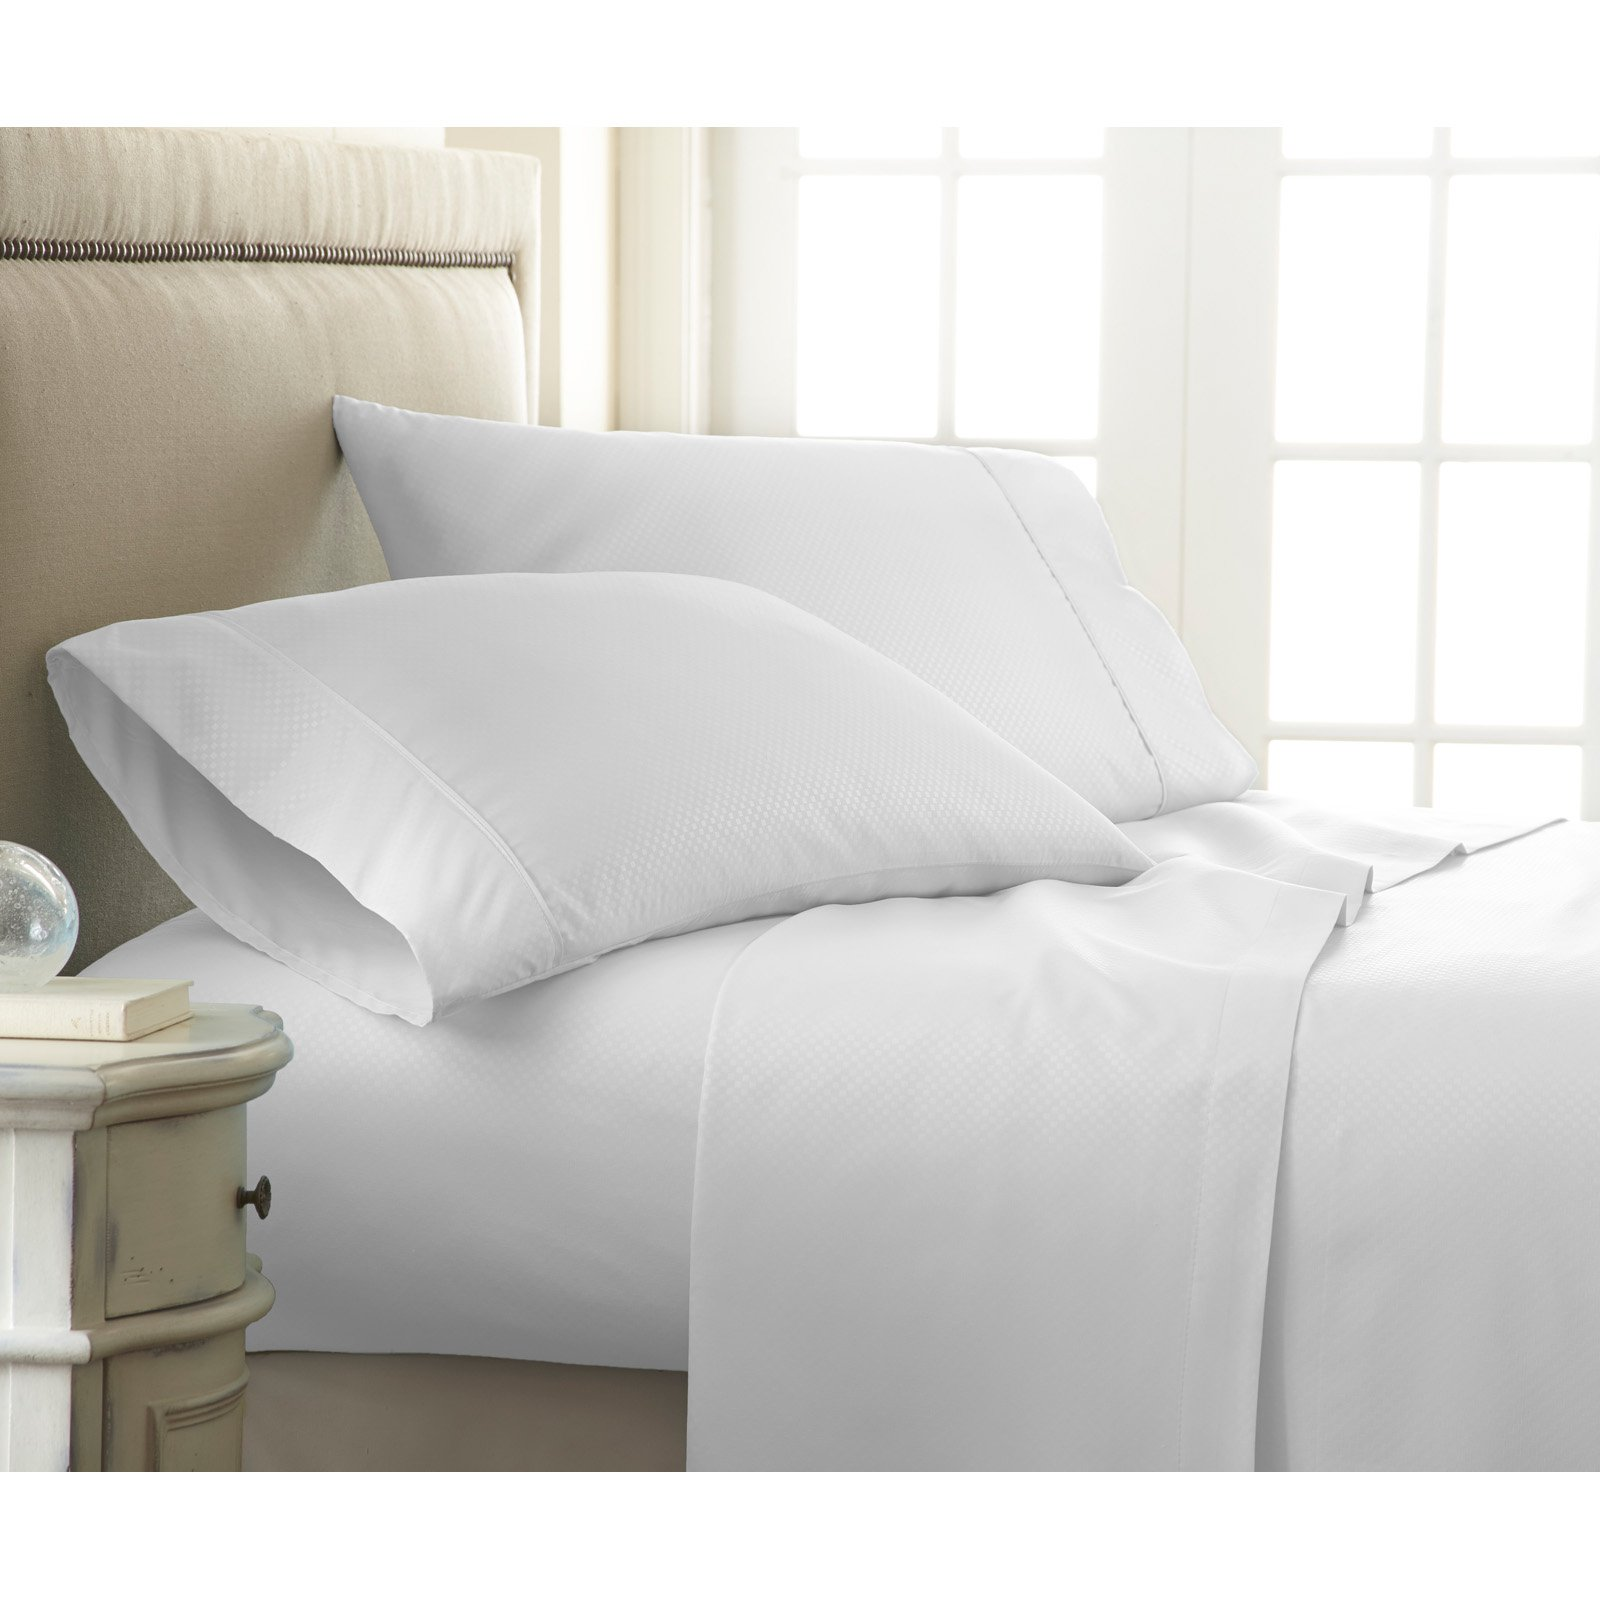 Simply Soft 4 Piece Embossed Bed Sheet Set by ienjoy Home